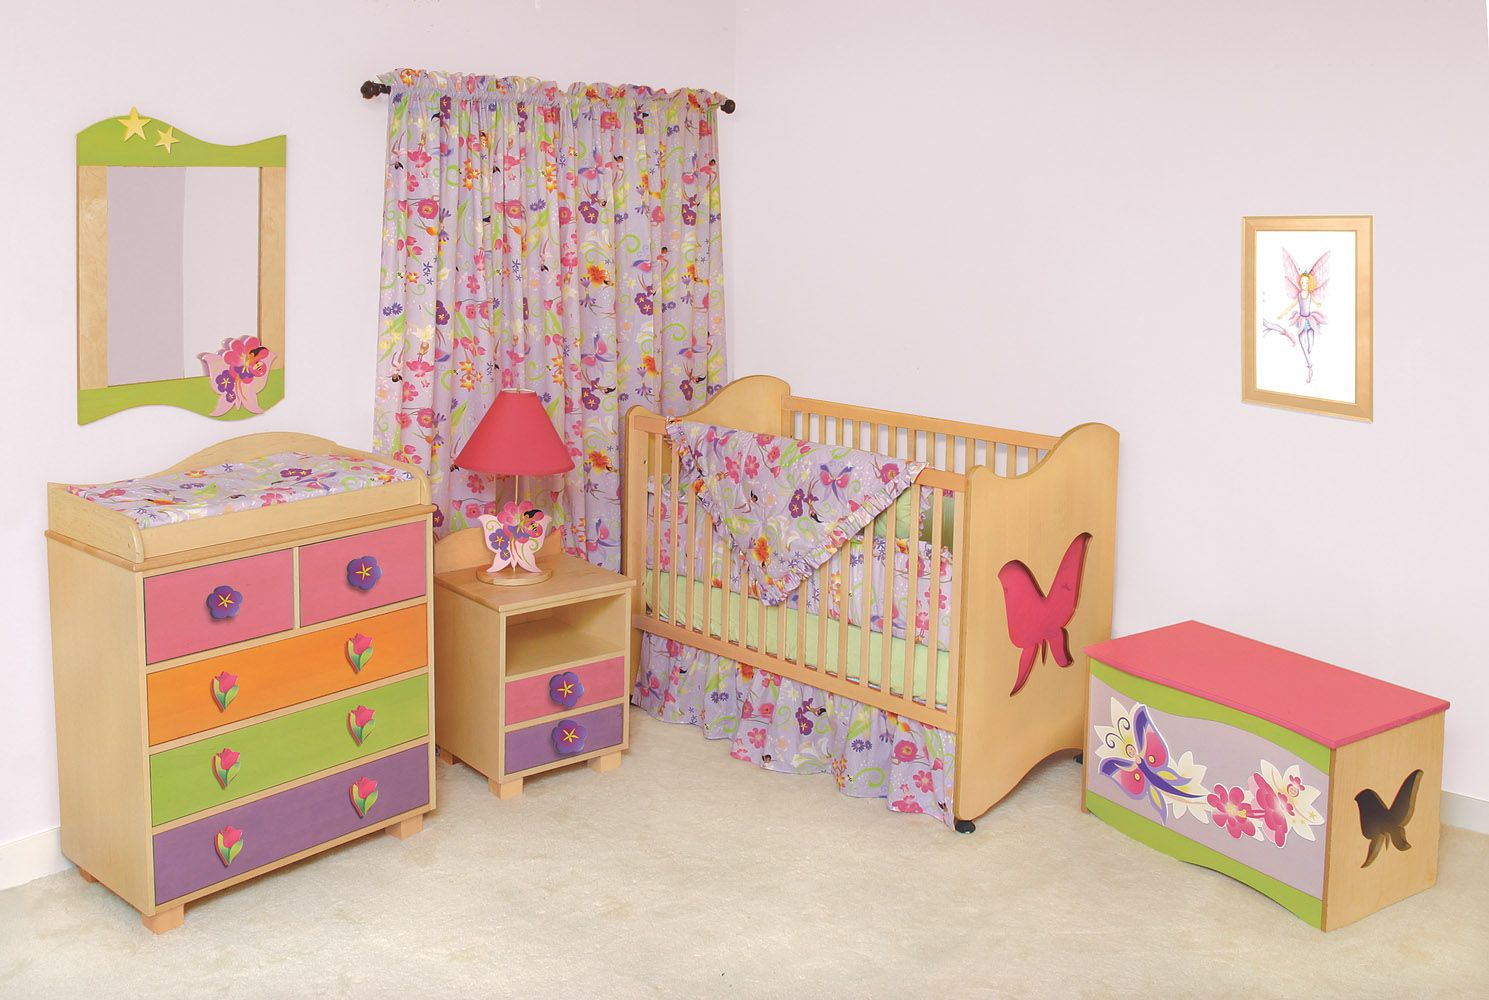 room store bronx beds warehouse am kids cupboard efw stores discount bed furniture